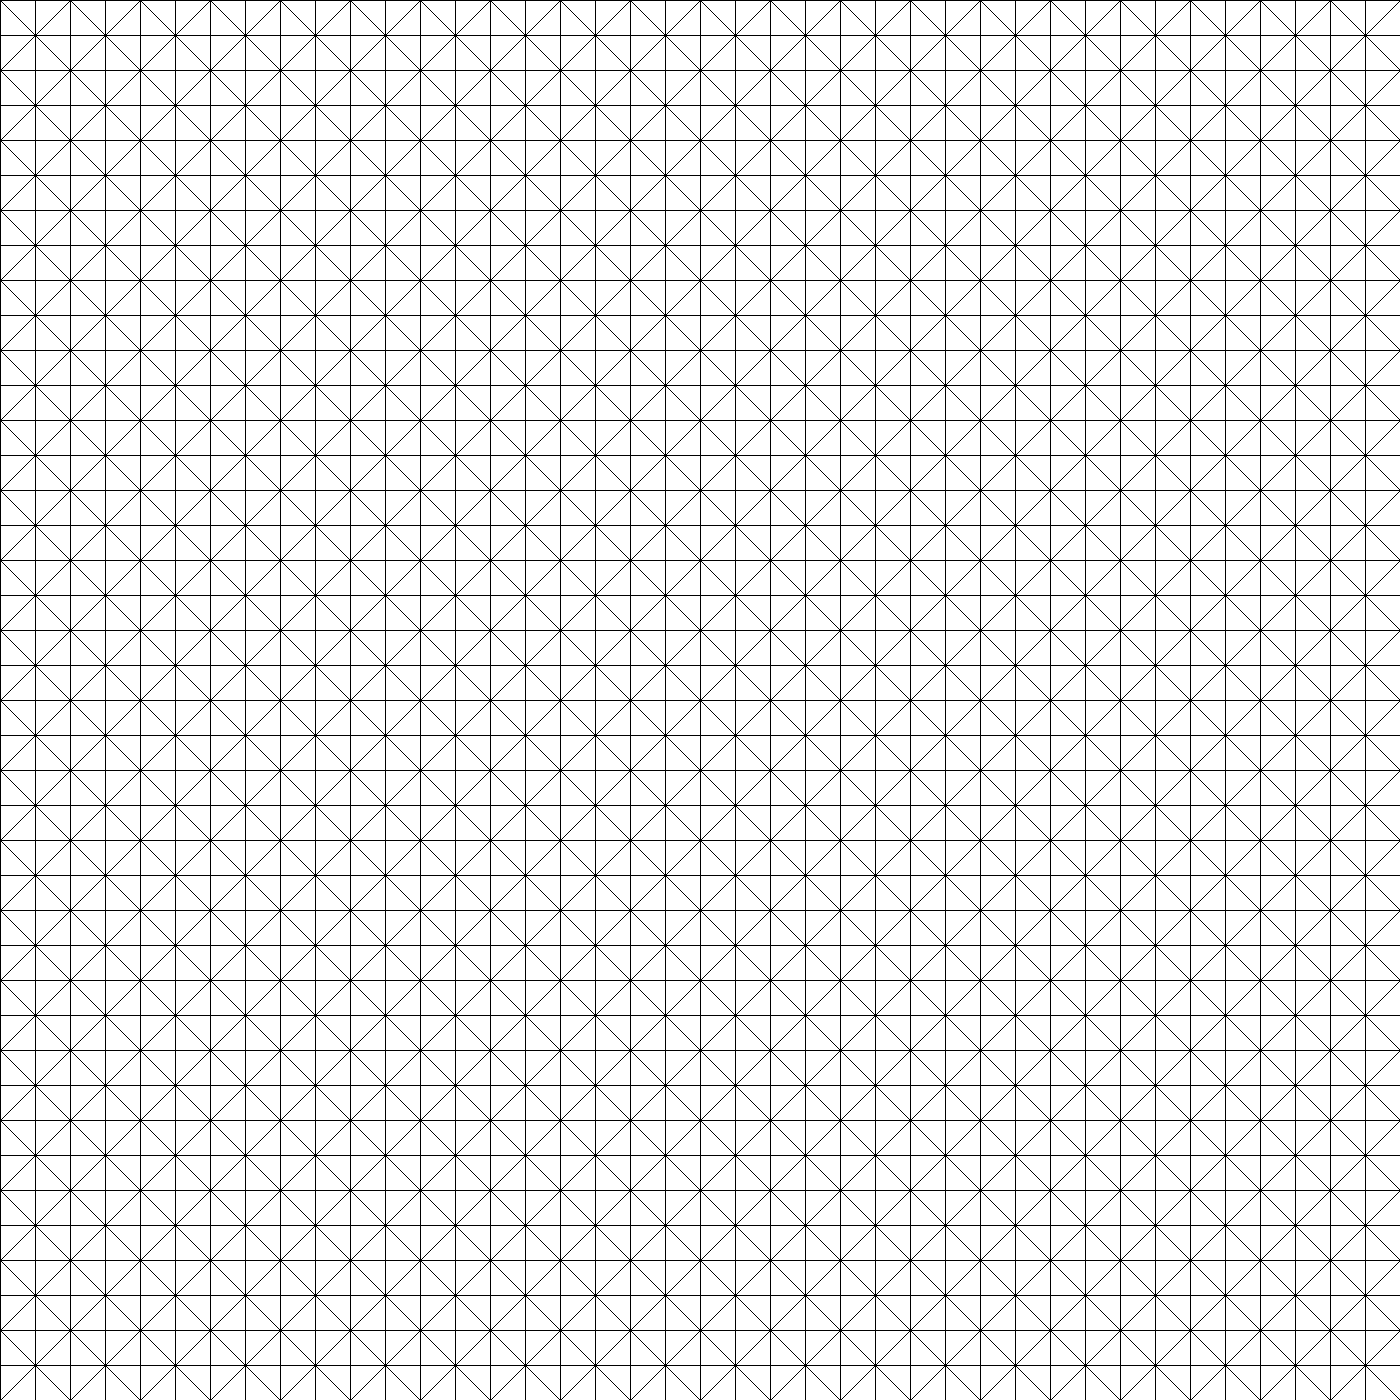 Triangulated grid png